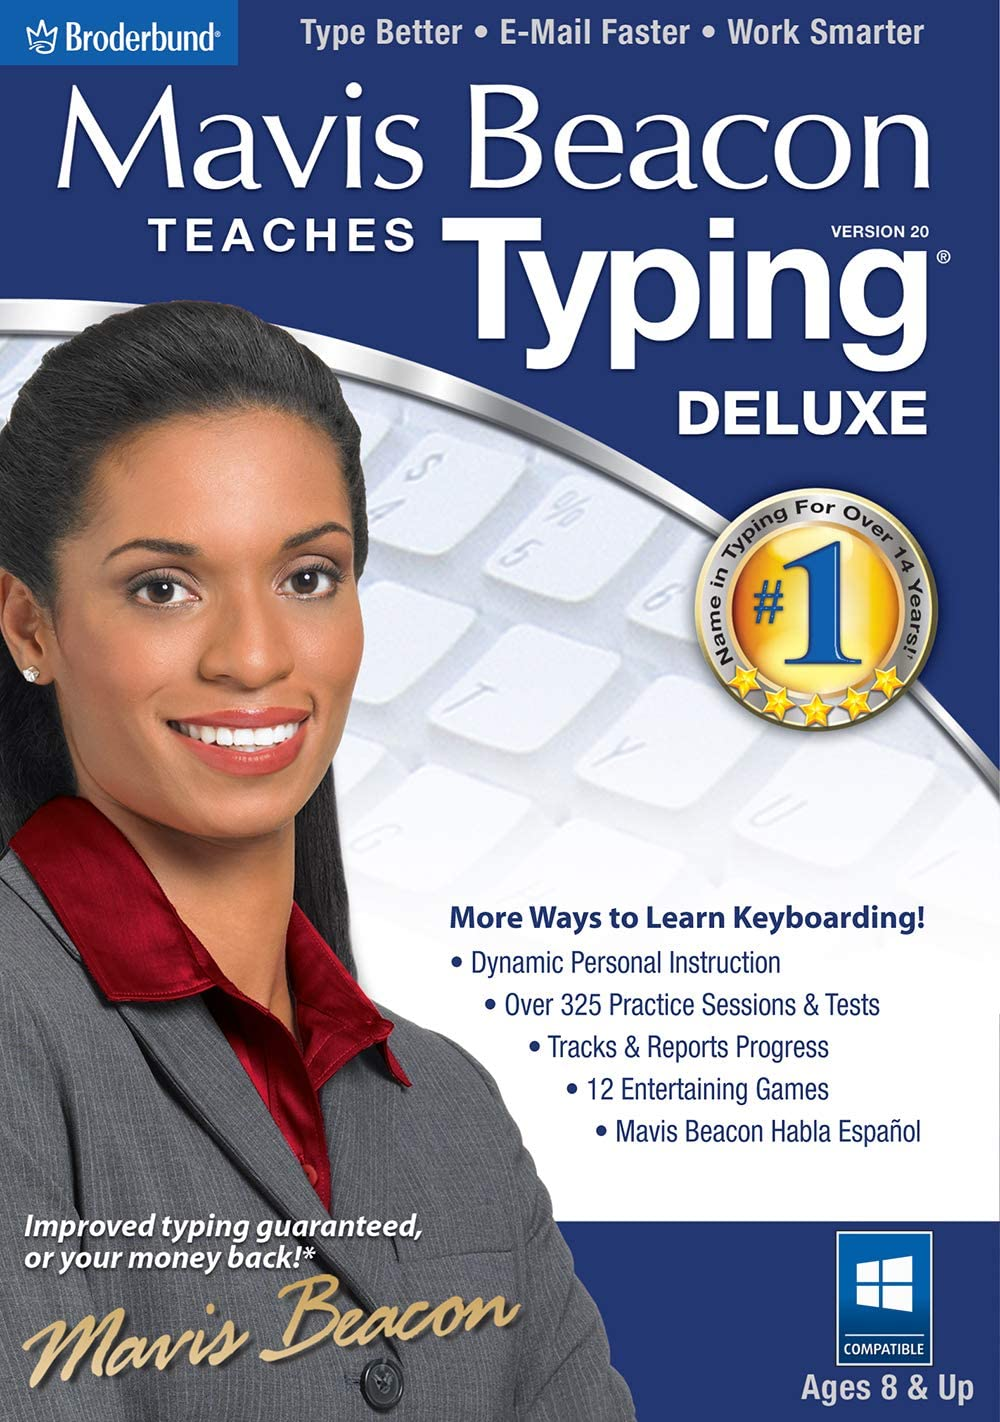 Mavis Beacon Teaches Typing Deluxe 20 [PC Download] 71QSz3qrA7L